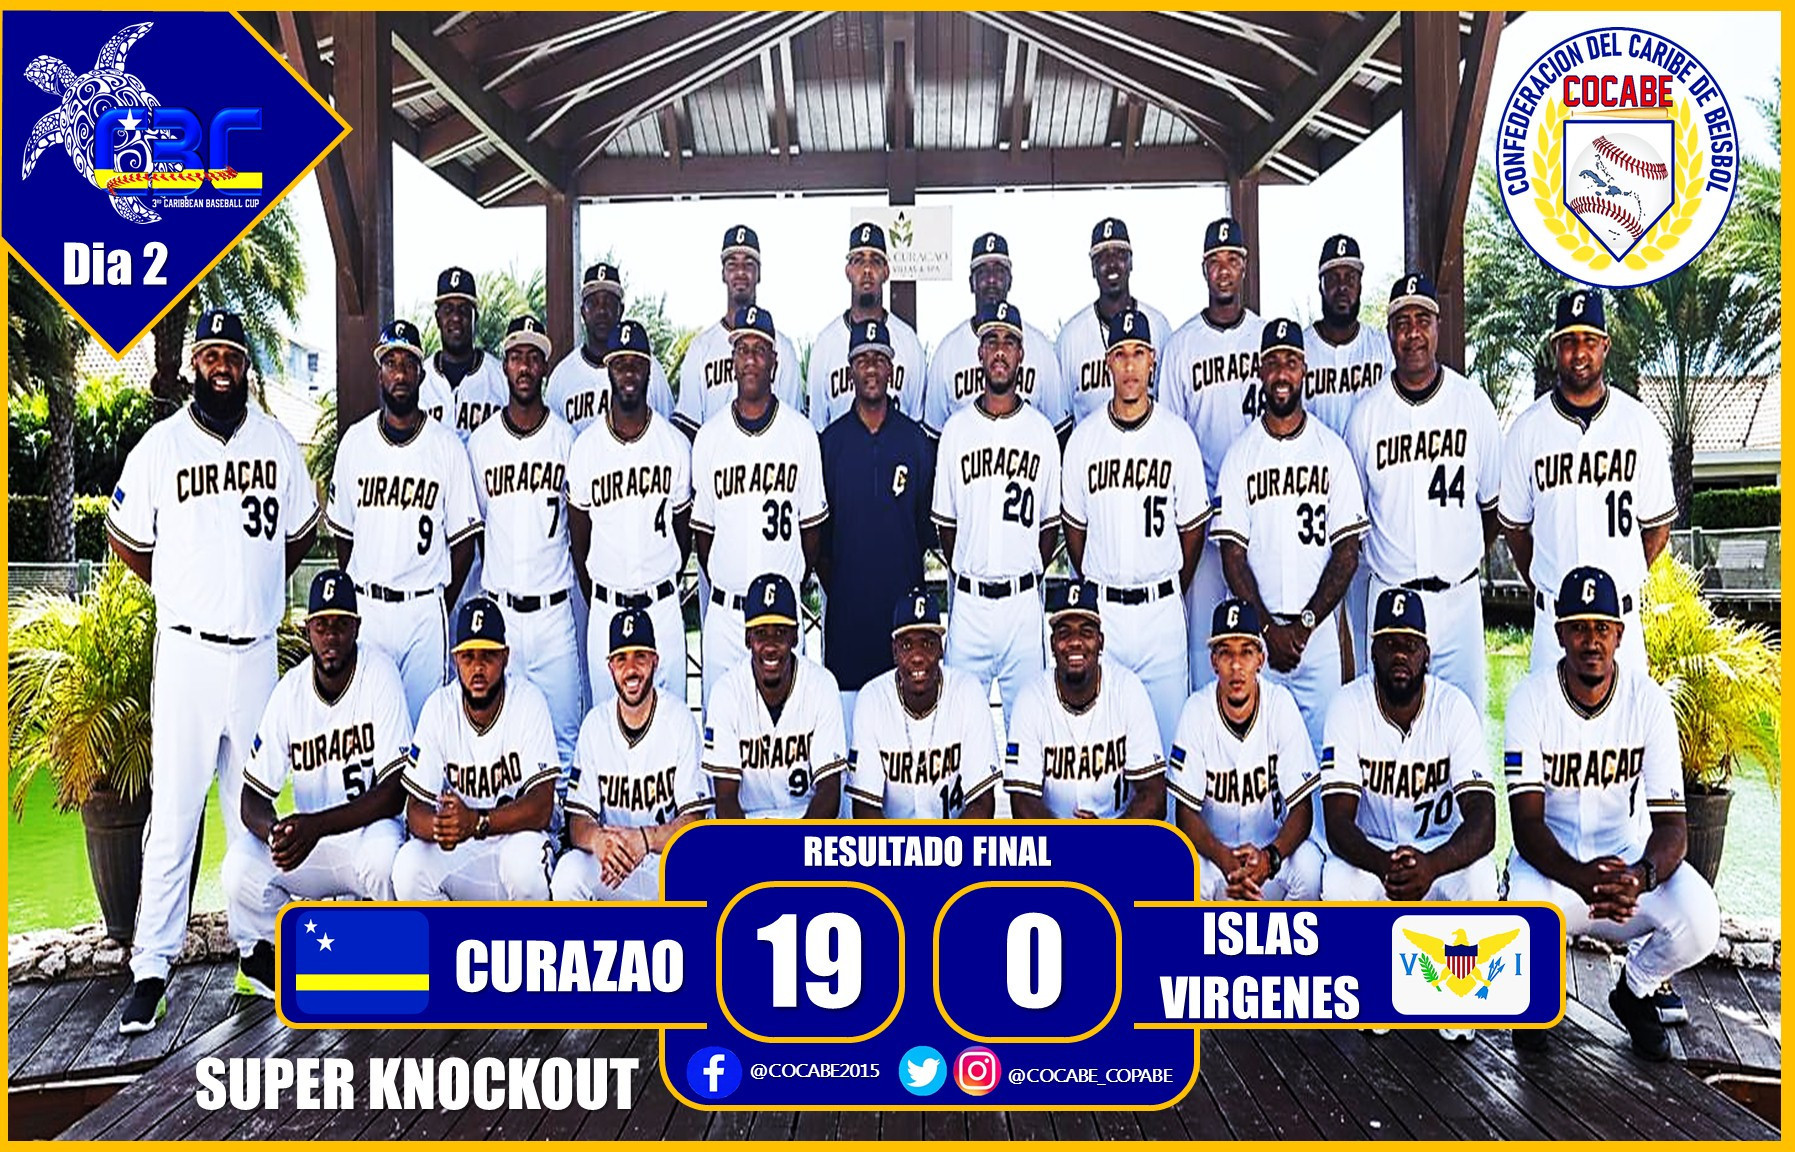 Curacao thrashed the US Virgin Islands on day two of the Caribbean Baseball Cup ©COCABE